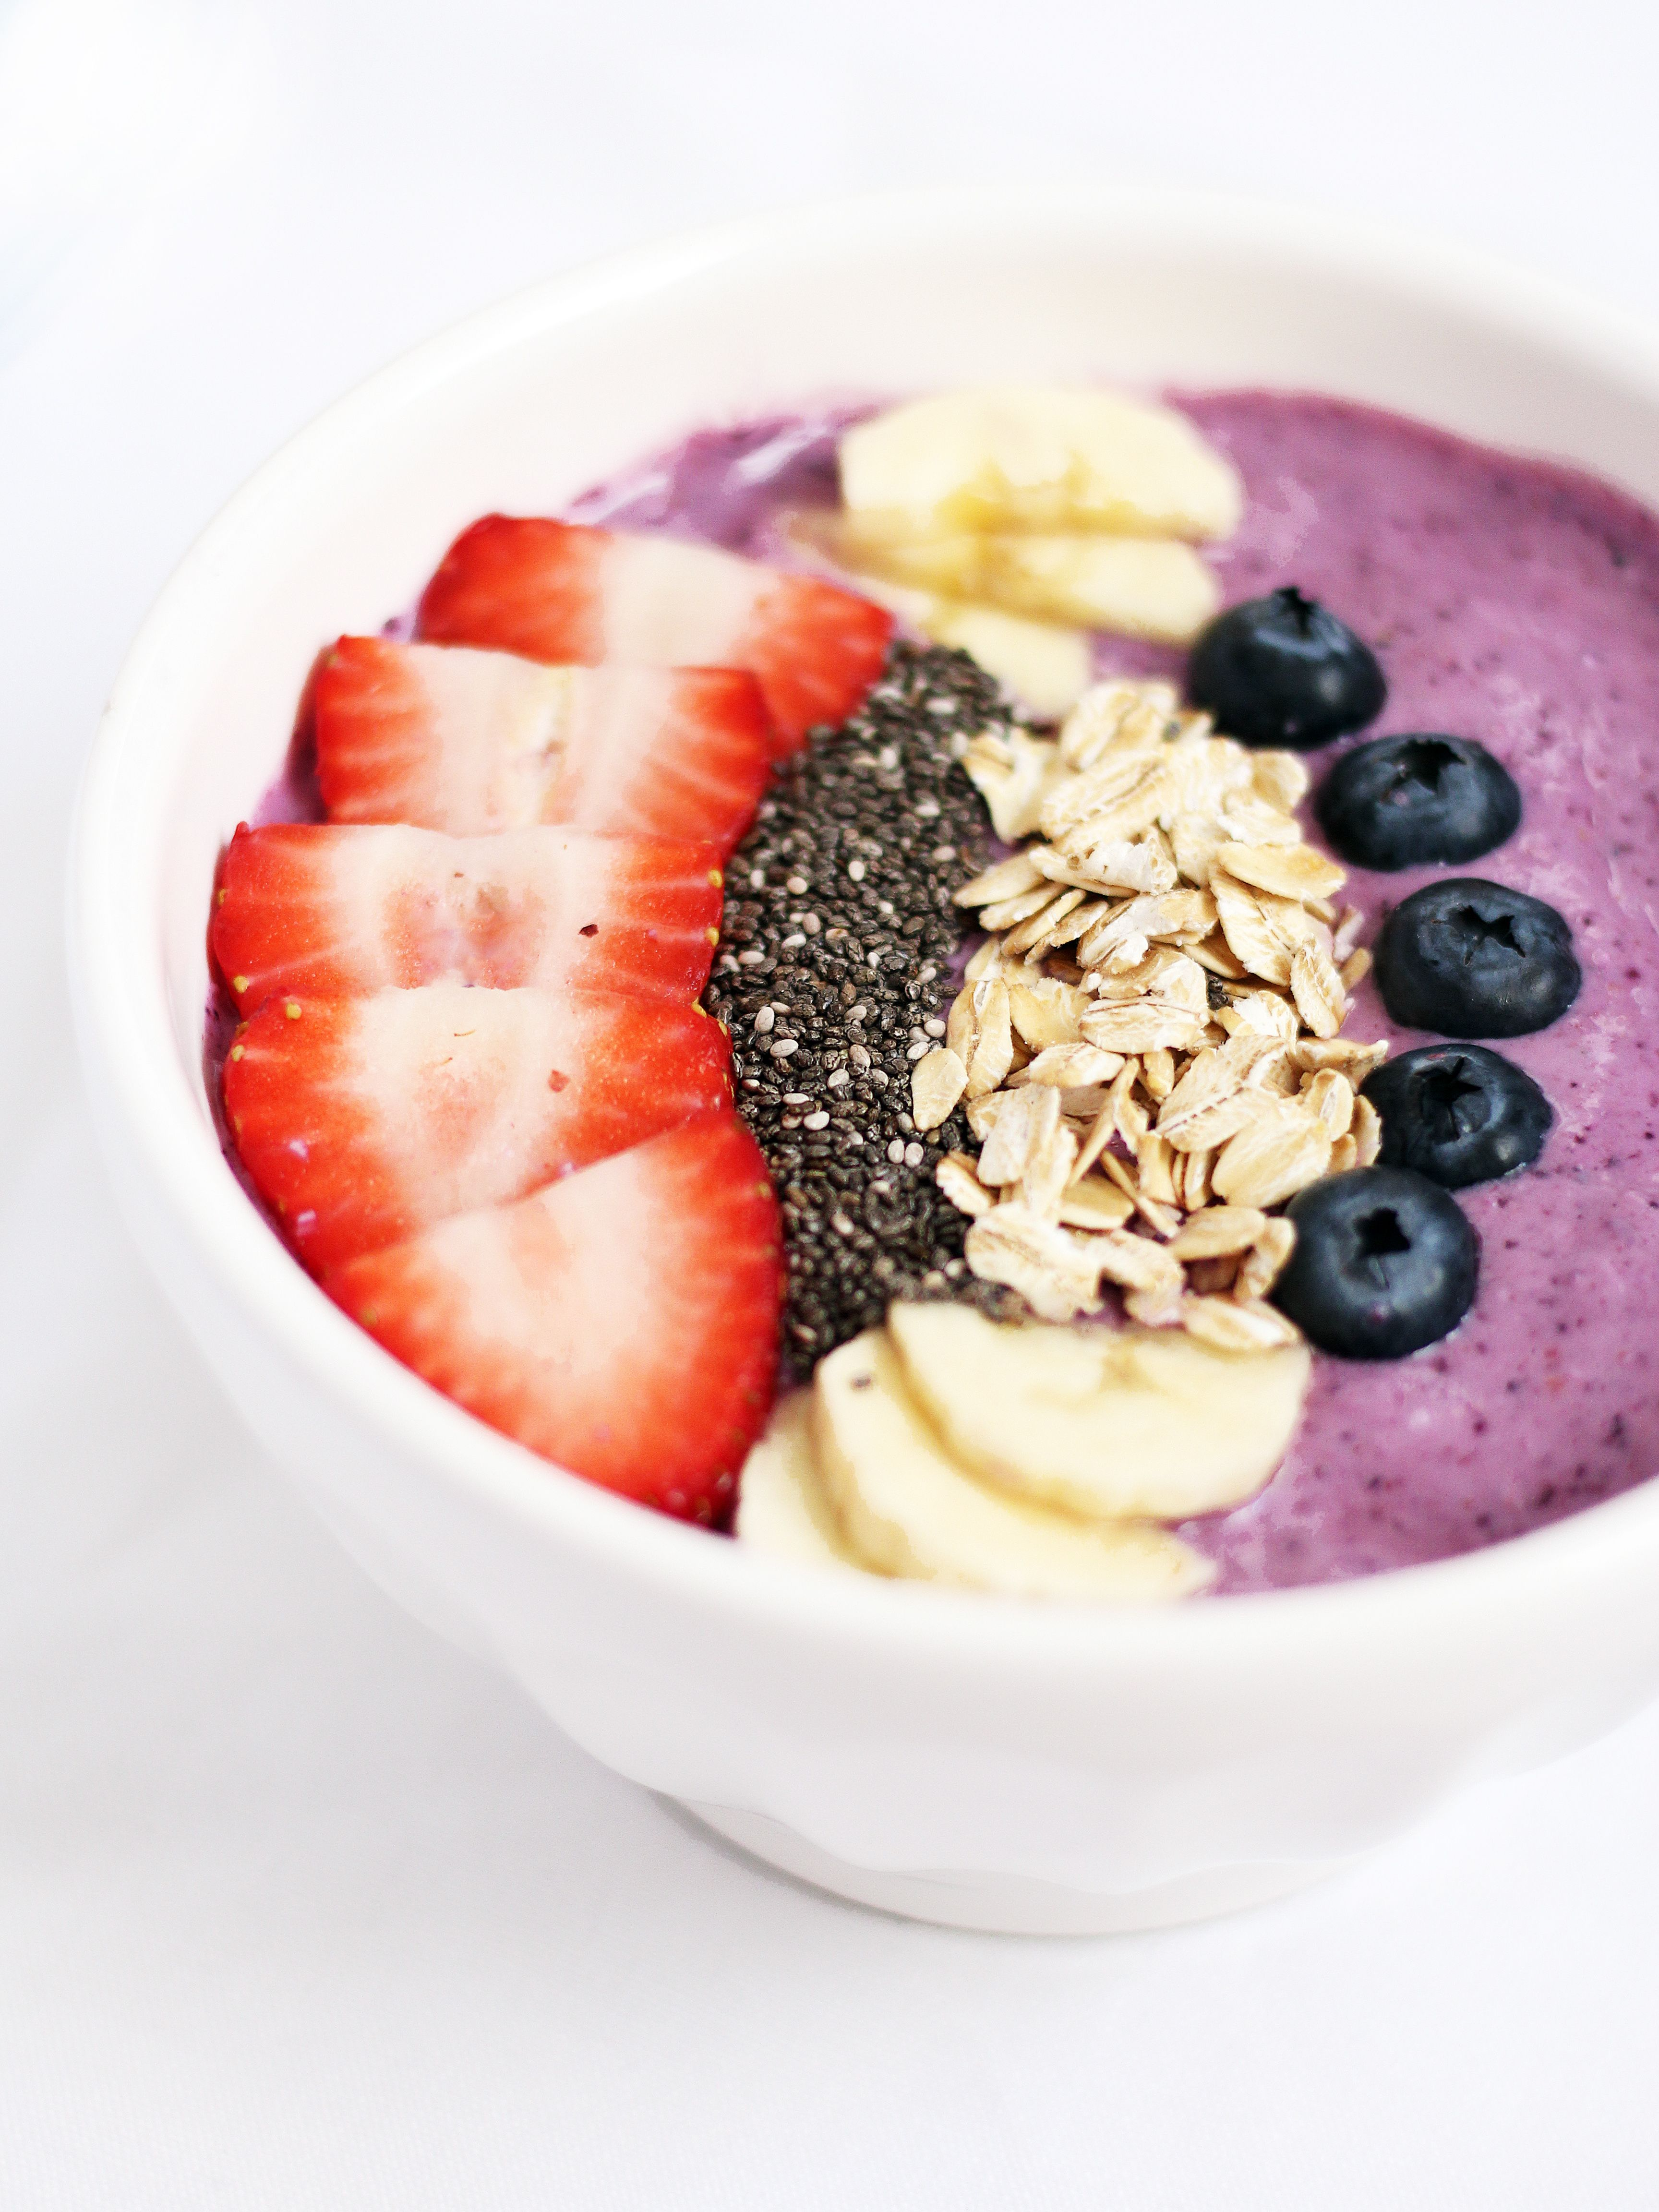 How To Make A Strawberry Blueberry Smoothie Bowl